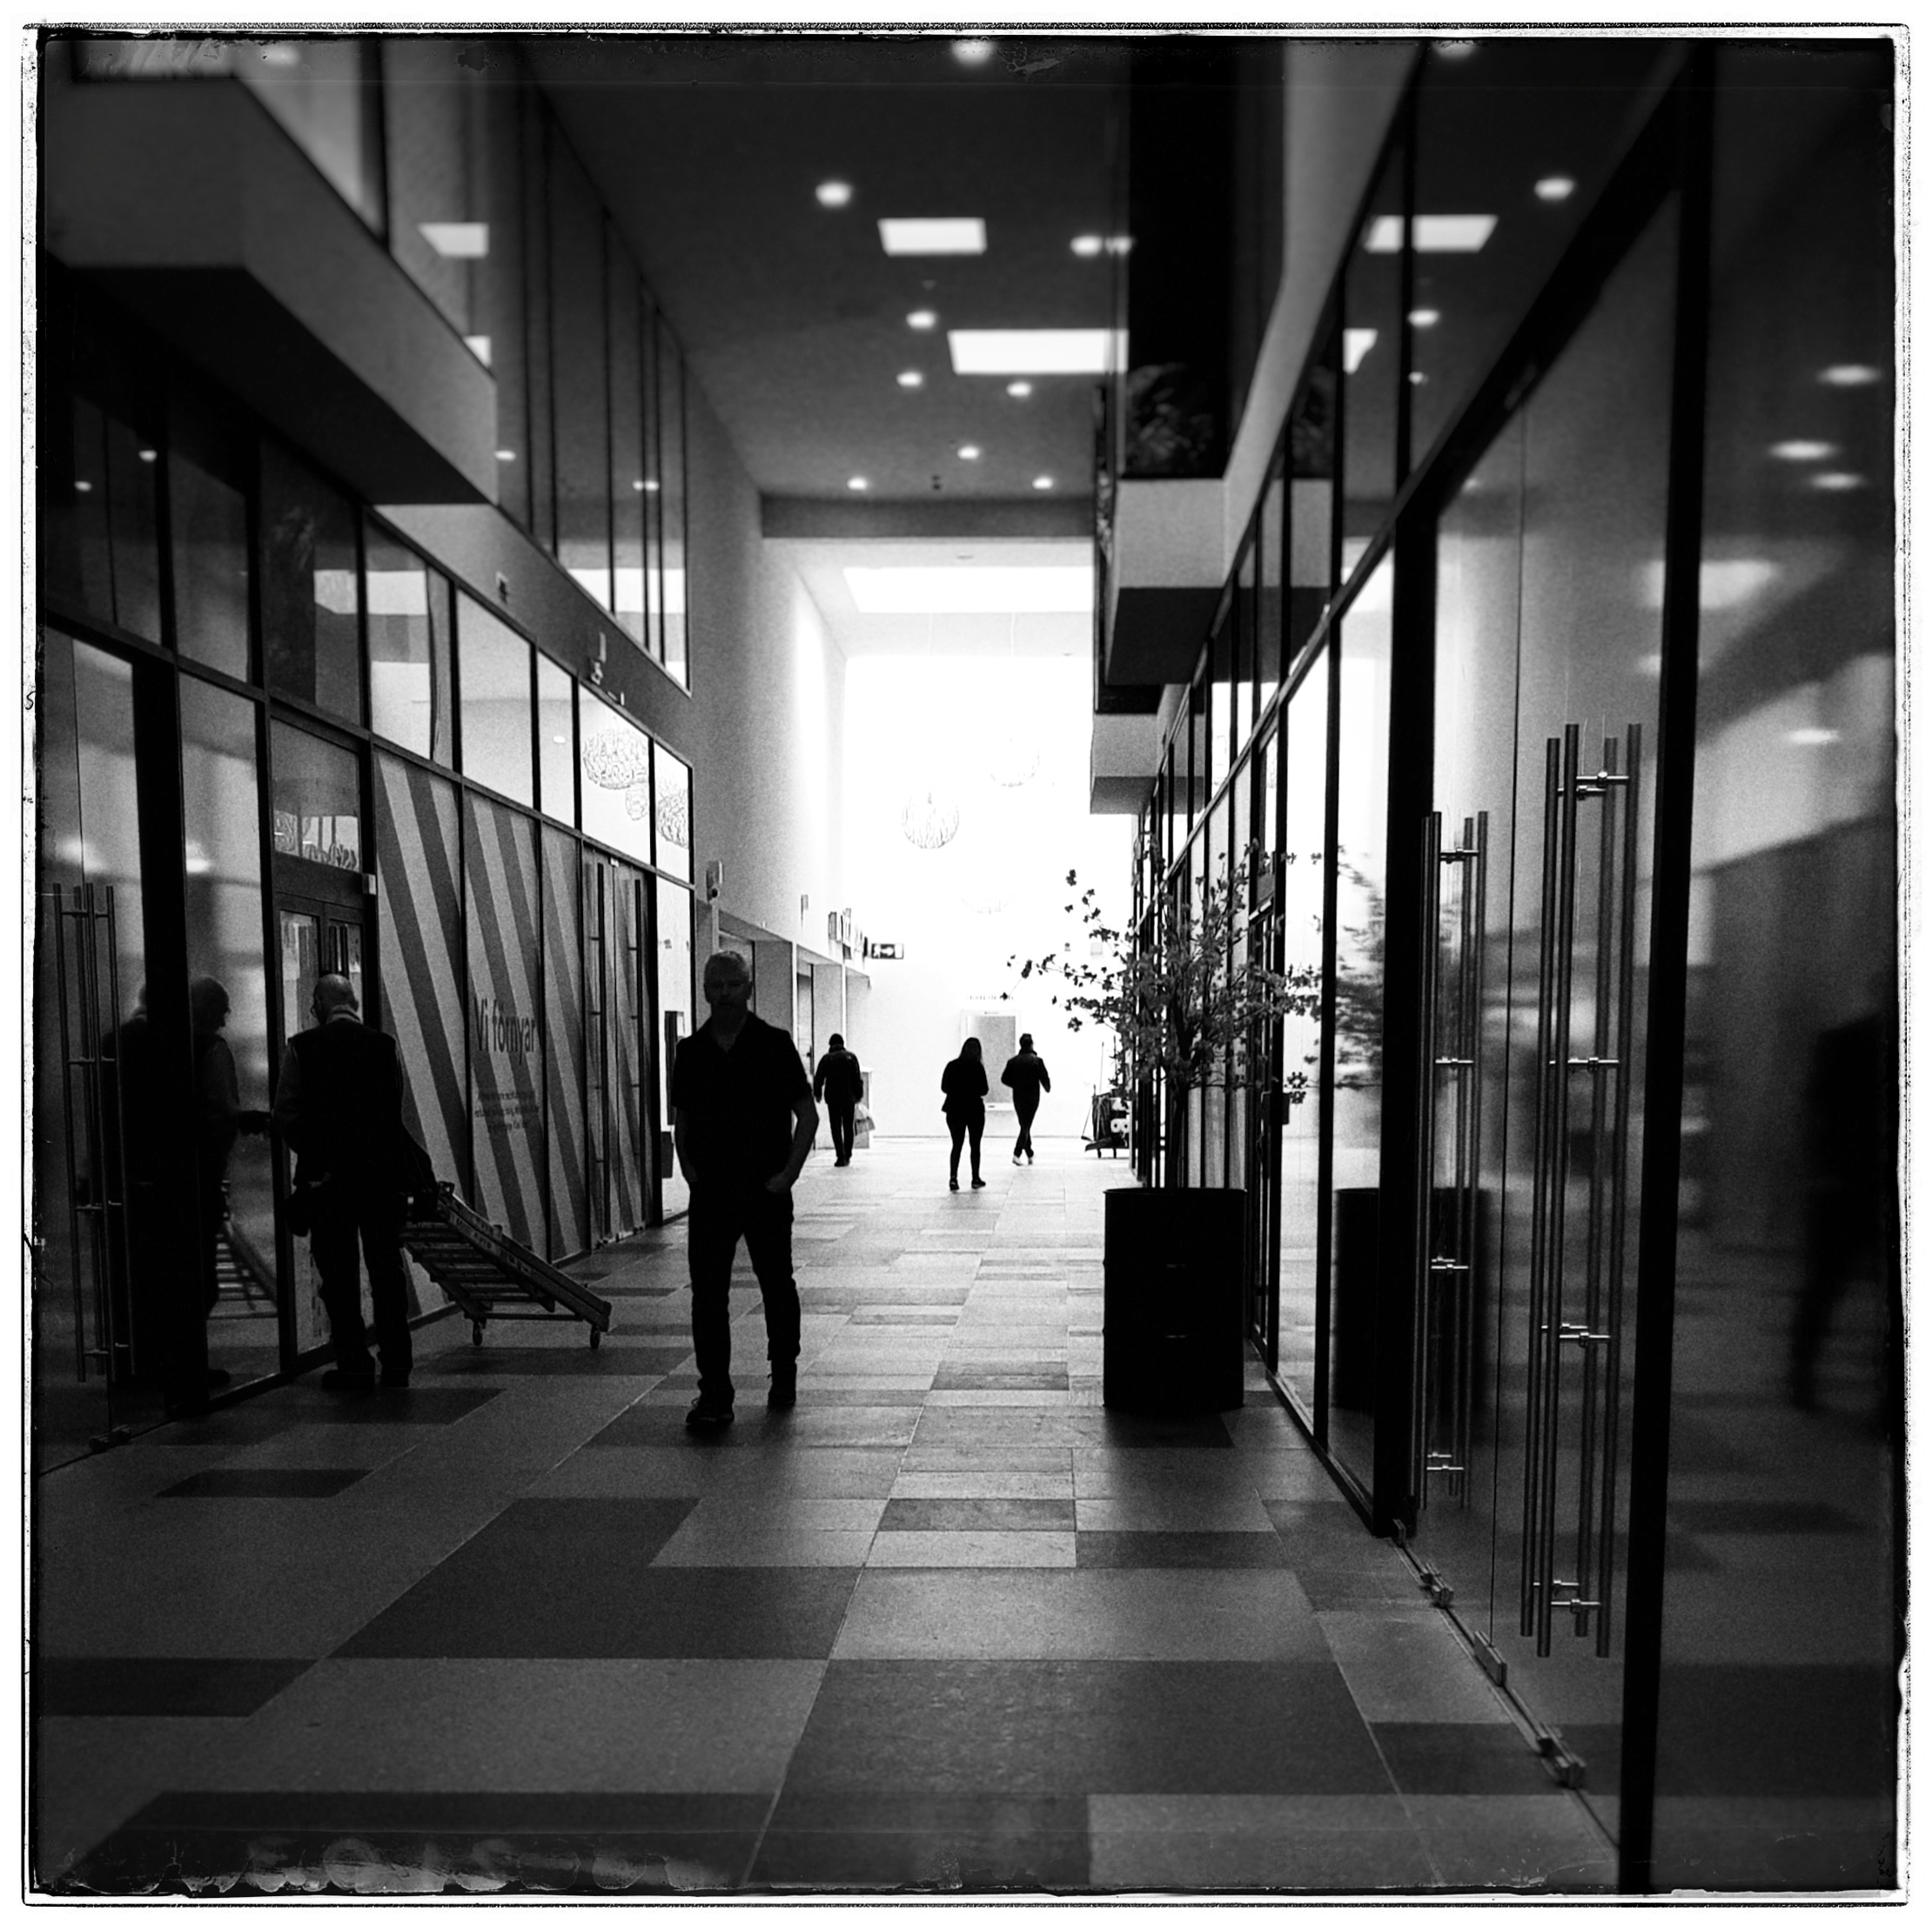 Day 111 - April 21: Shoppers